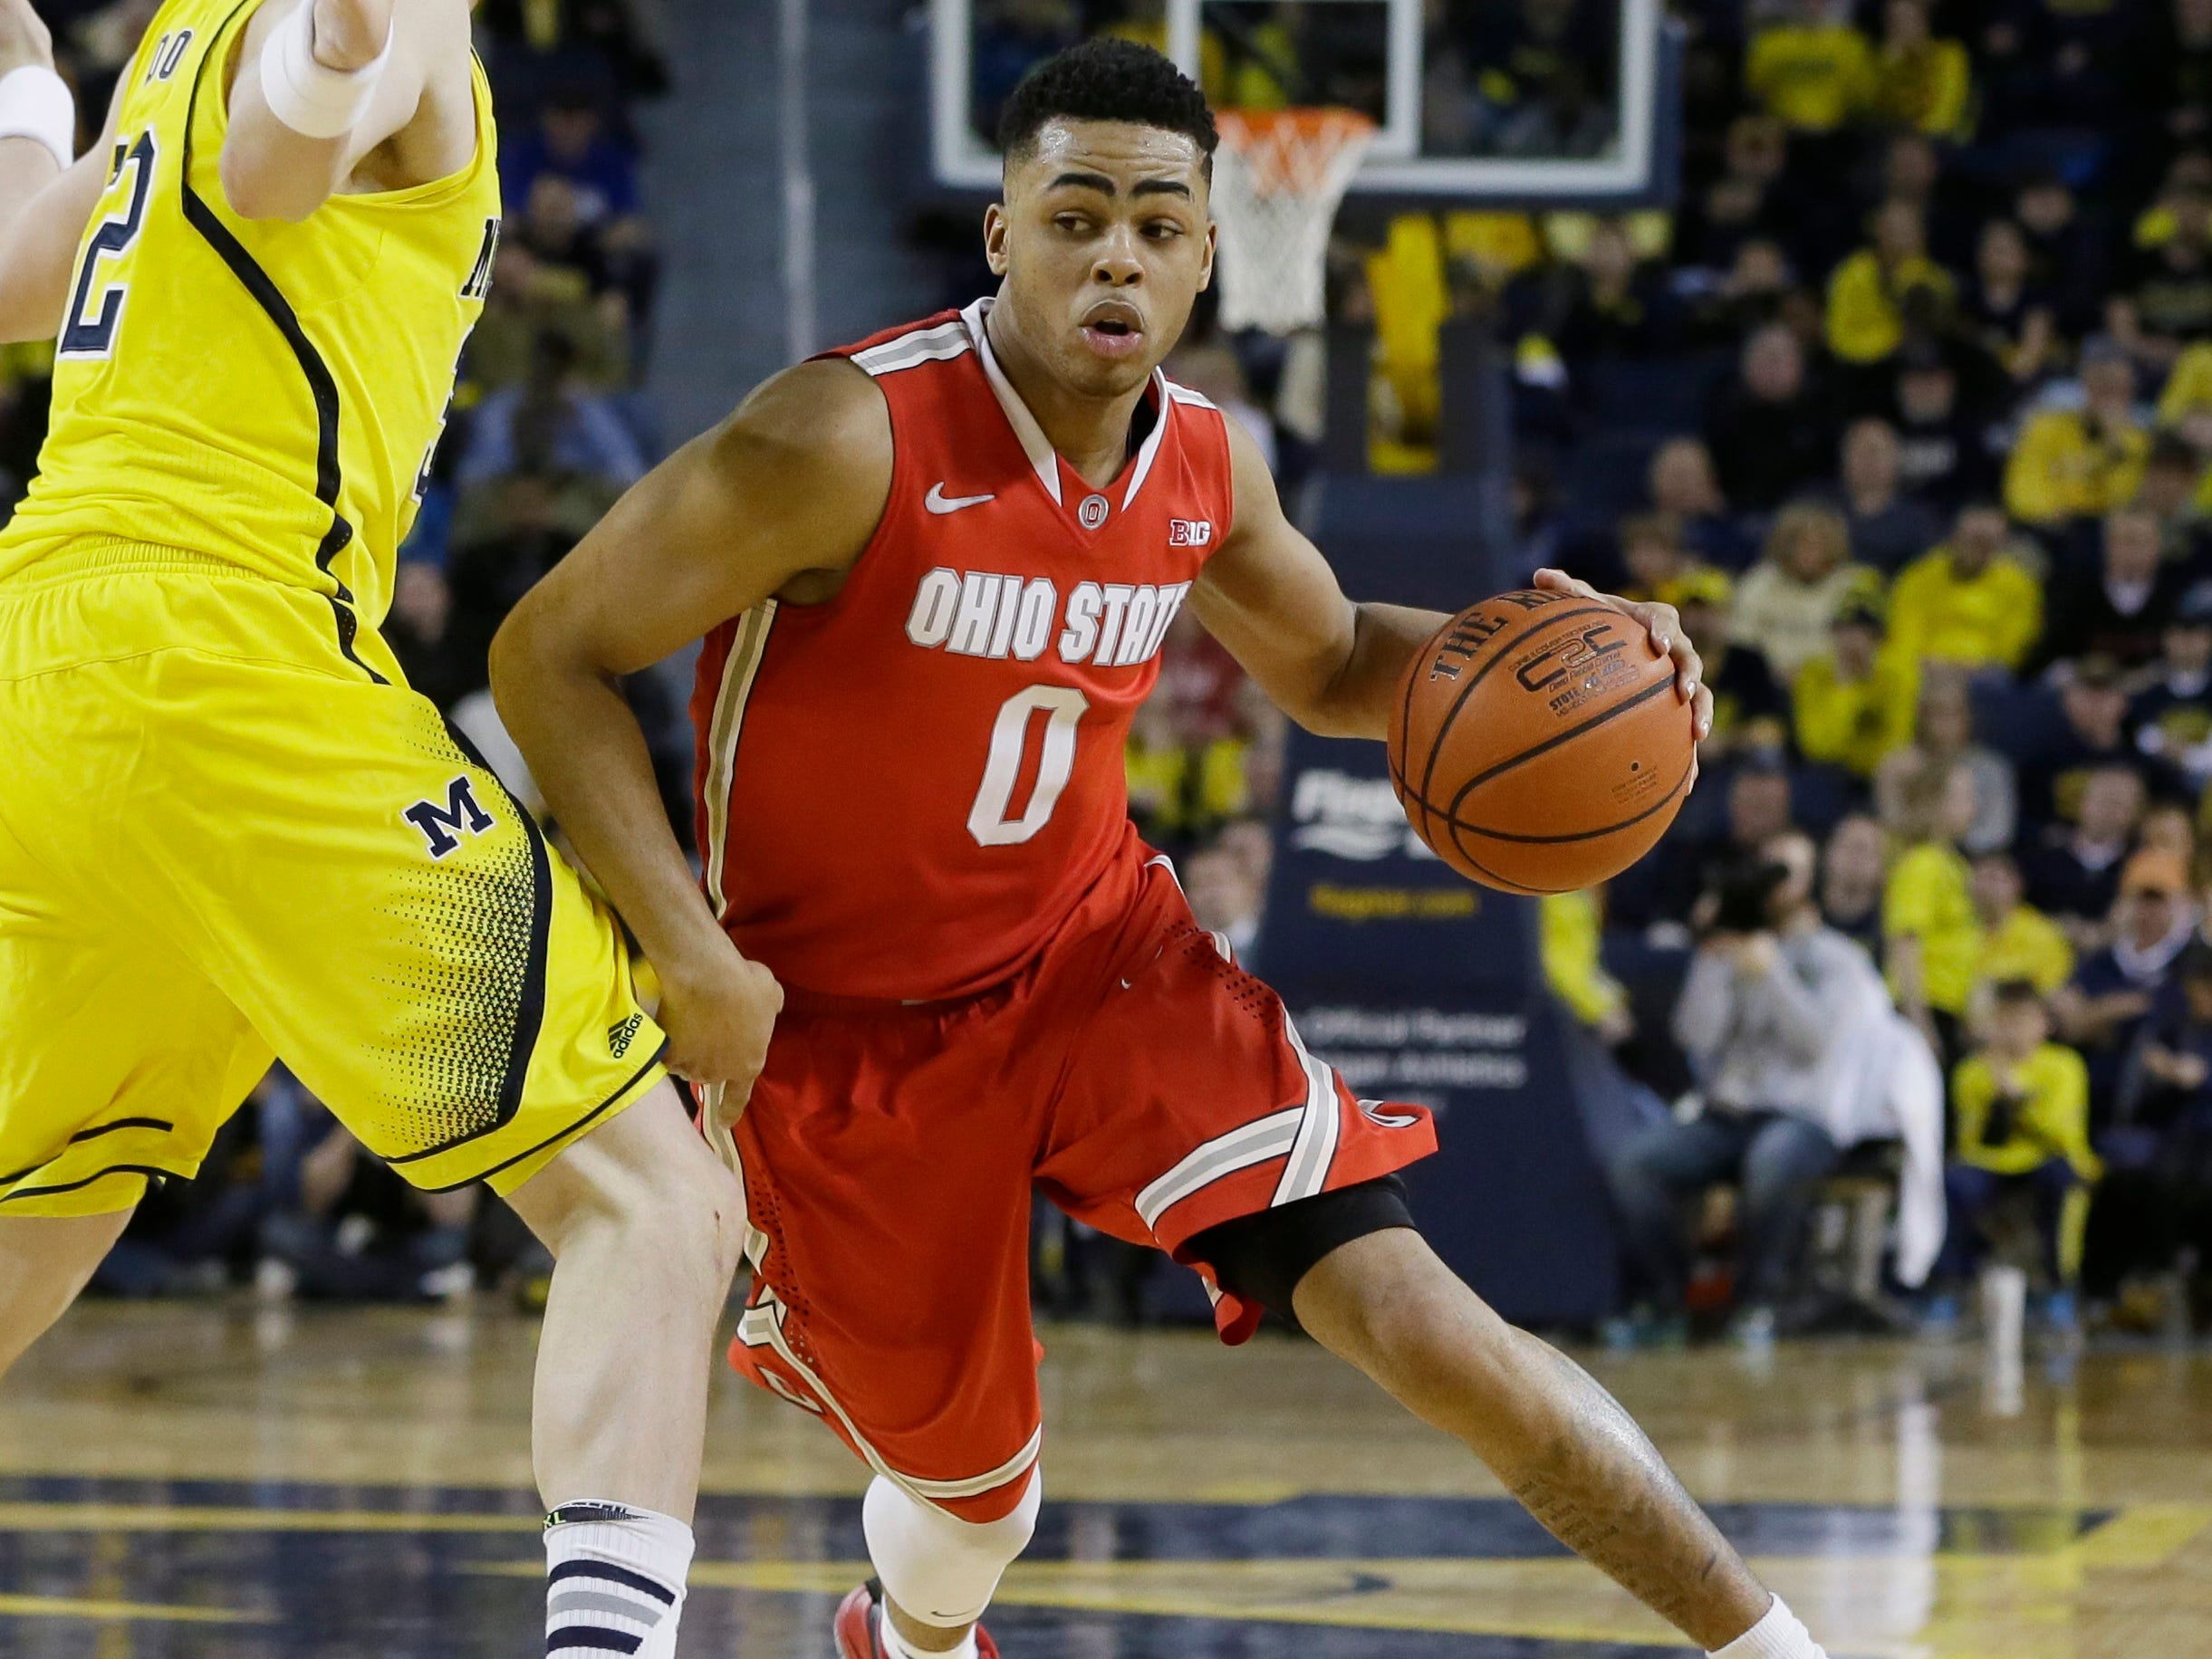 Ohio State guard D'Angelo Russell (0) drives on Michigan forward Ricky Doyle during the second half of an NCAA college basketball game earlier this season in Ann Arbor, Mich. Michigan defeated Ohio State 64-57. (